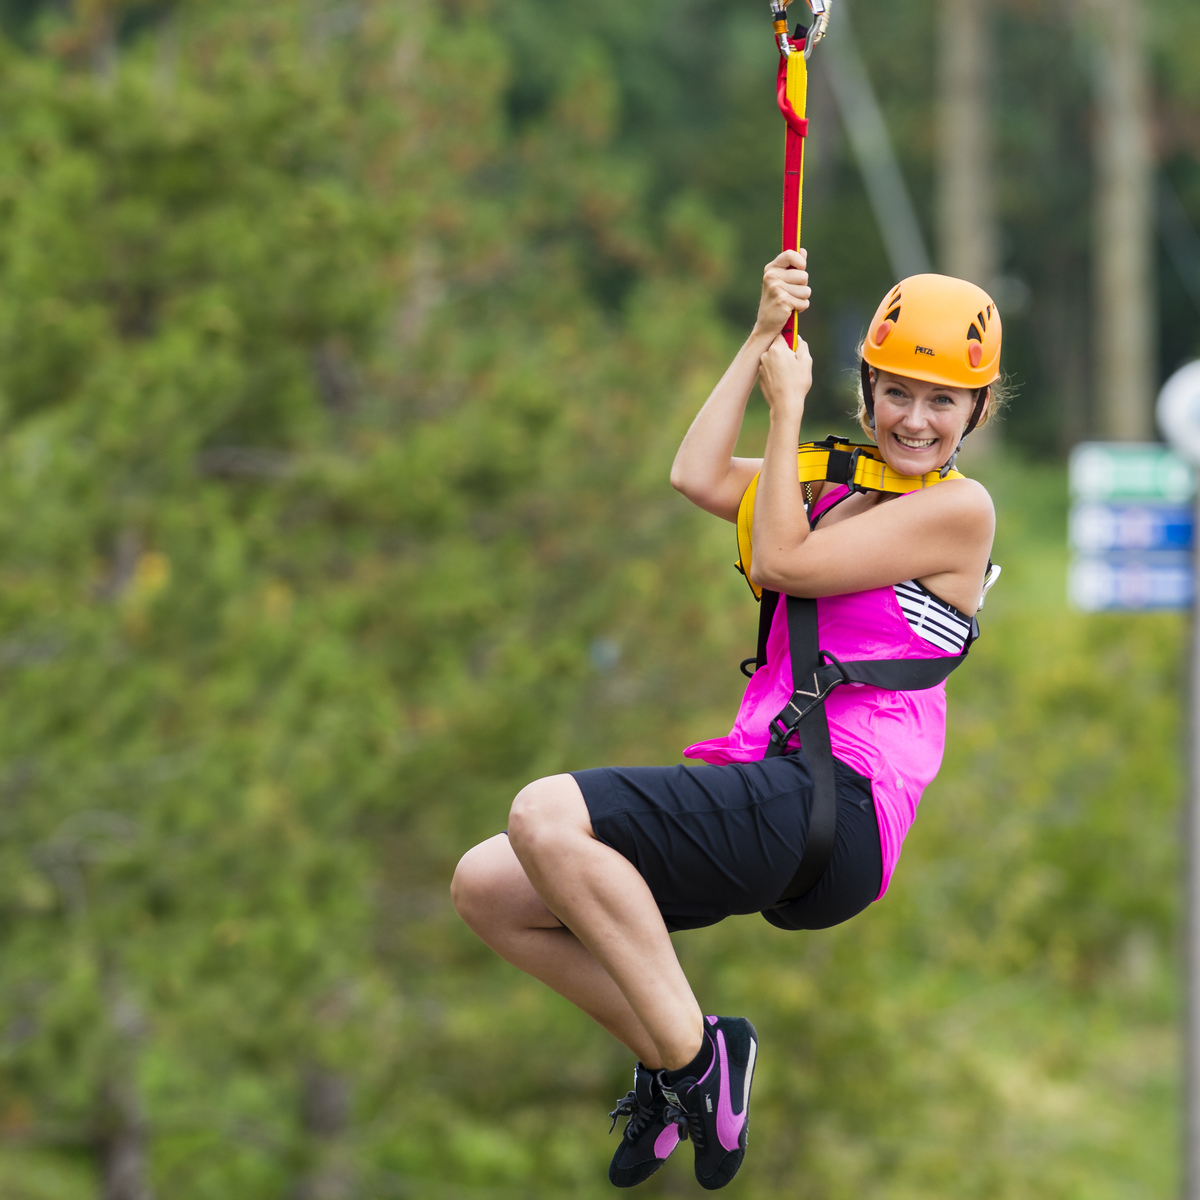 9. Test Out the New Zip Lining Course